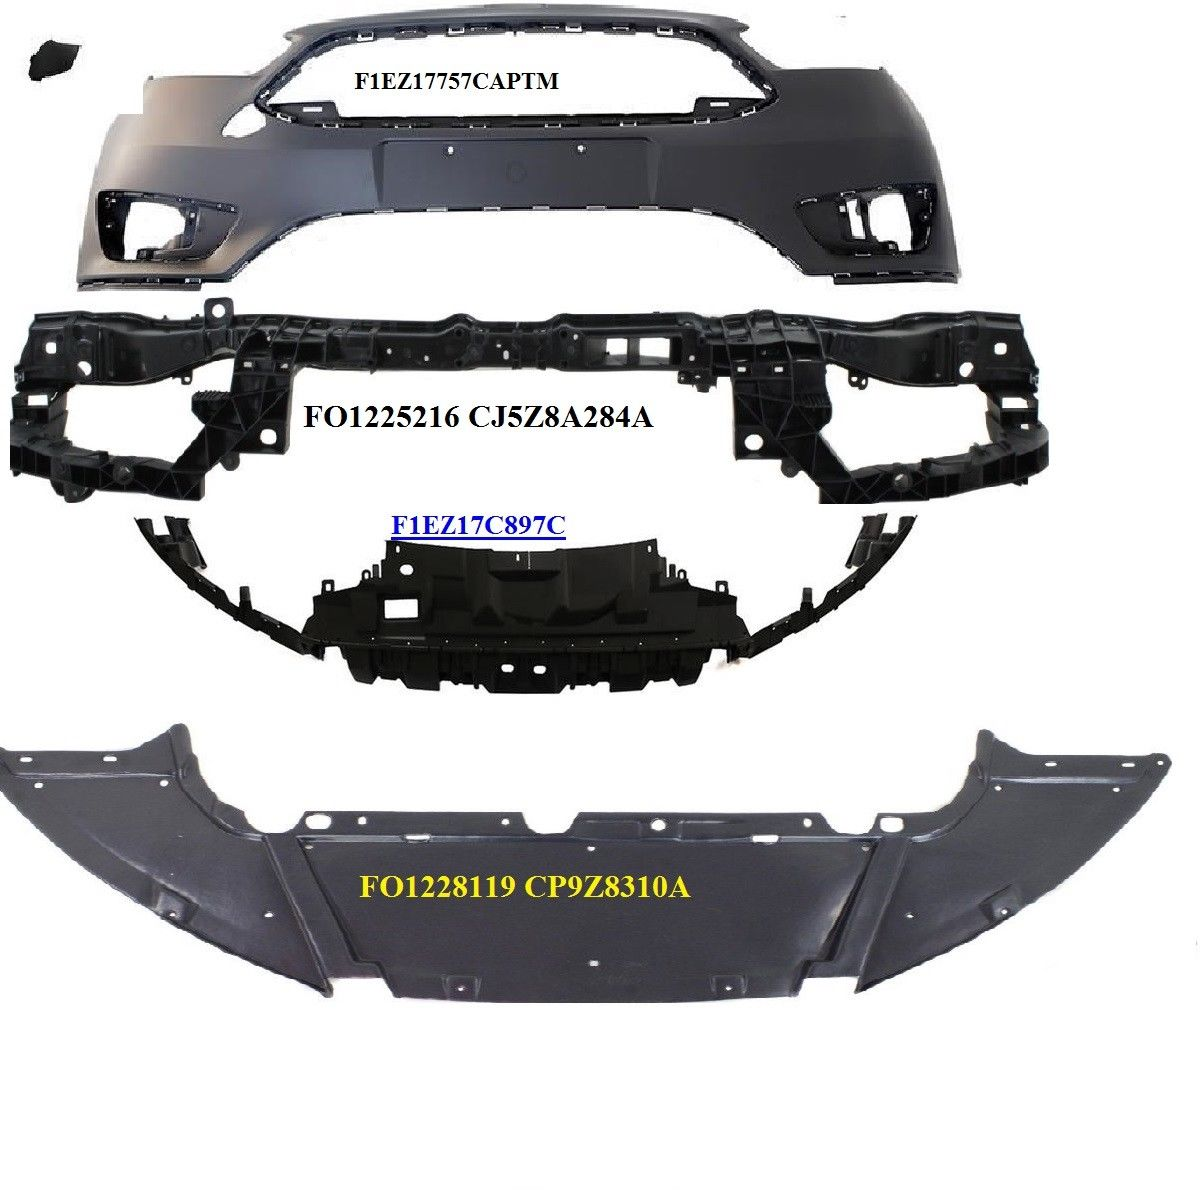 mk3 to mk3.5 front end conversion-15-to18-ford-focus-bumper-radiator-support-splash.jpg